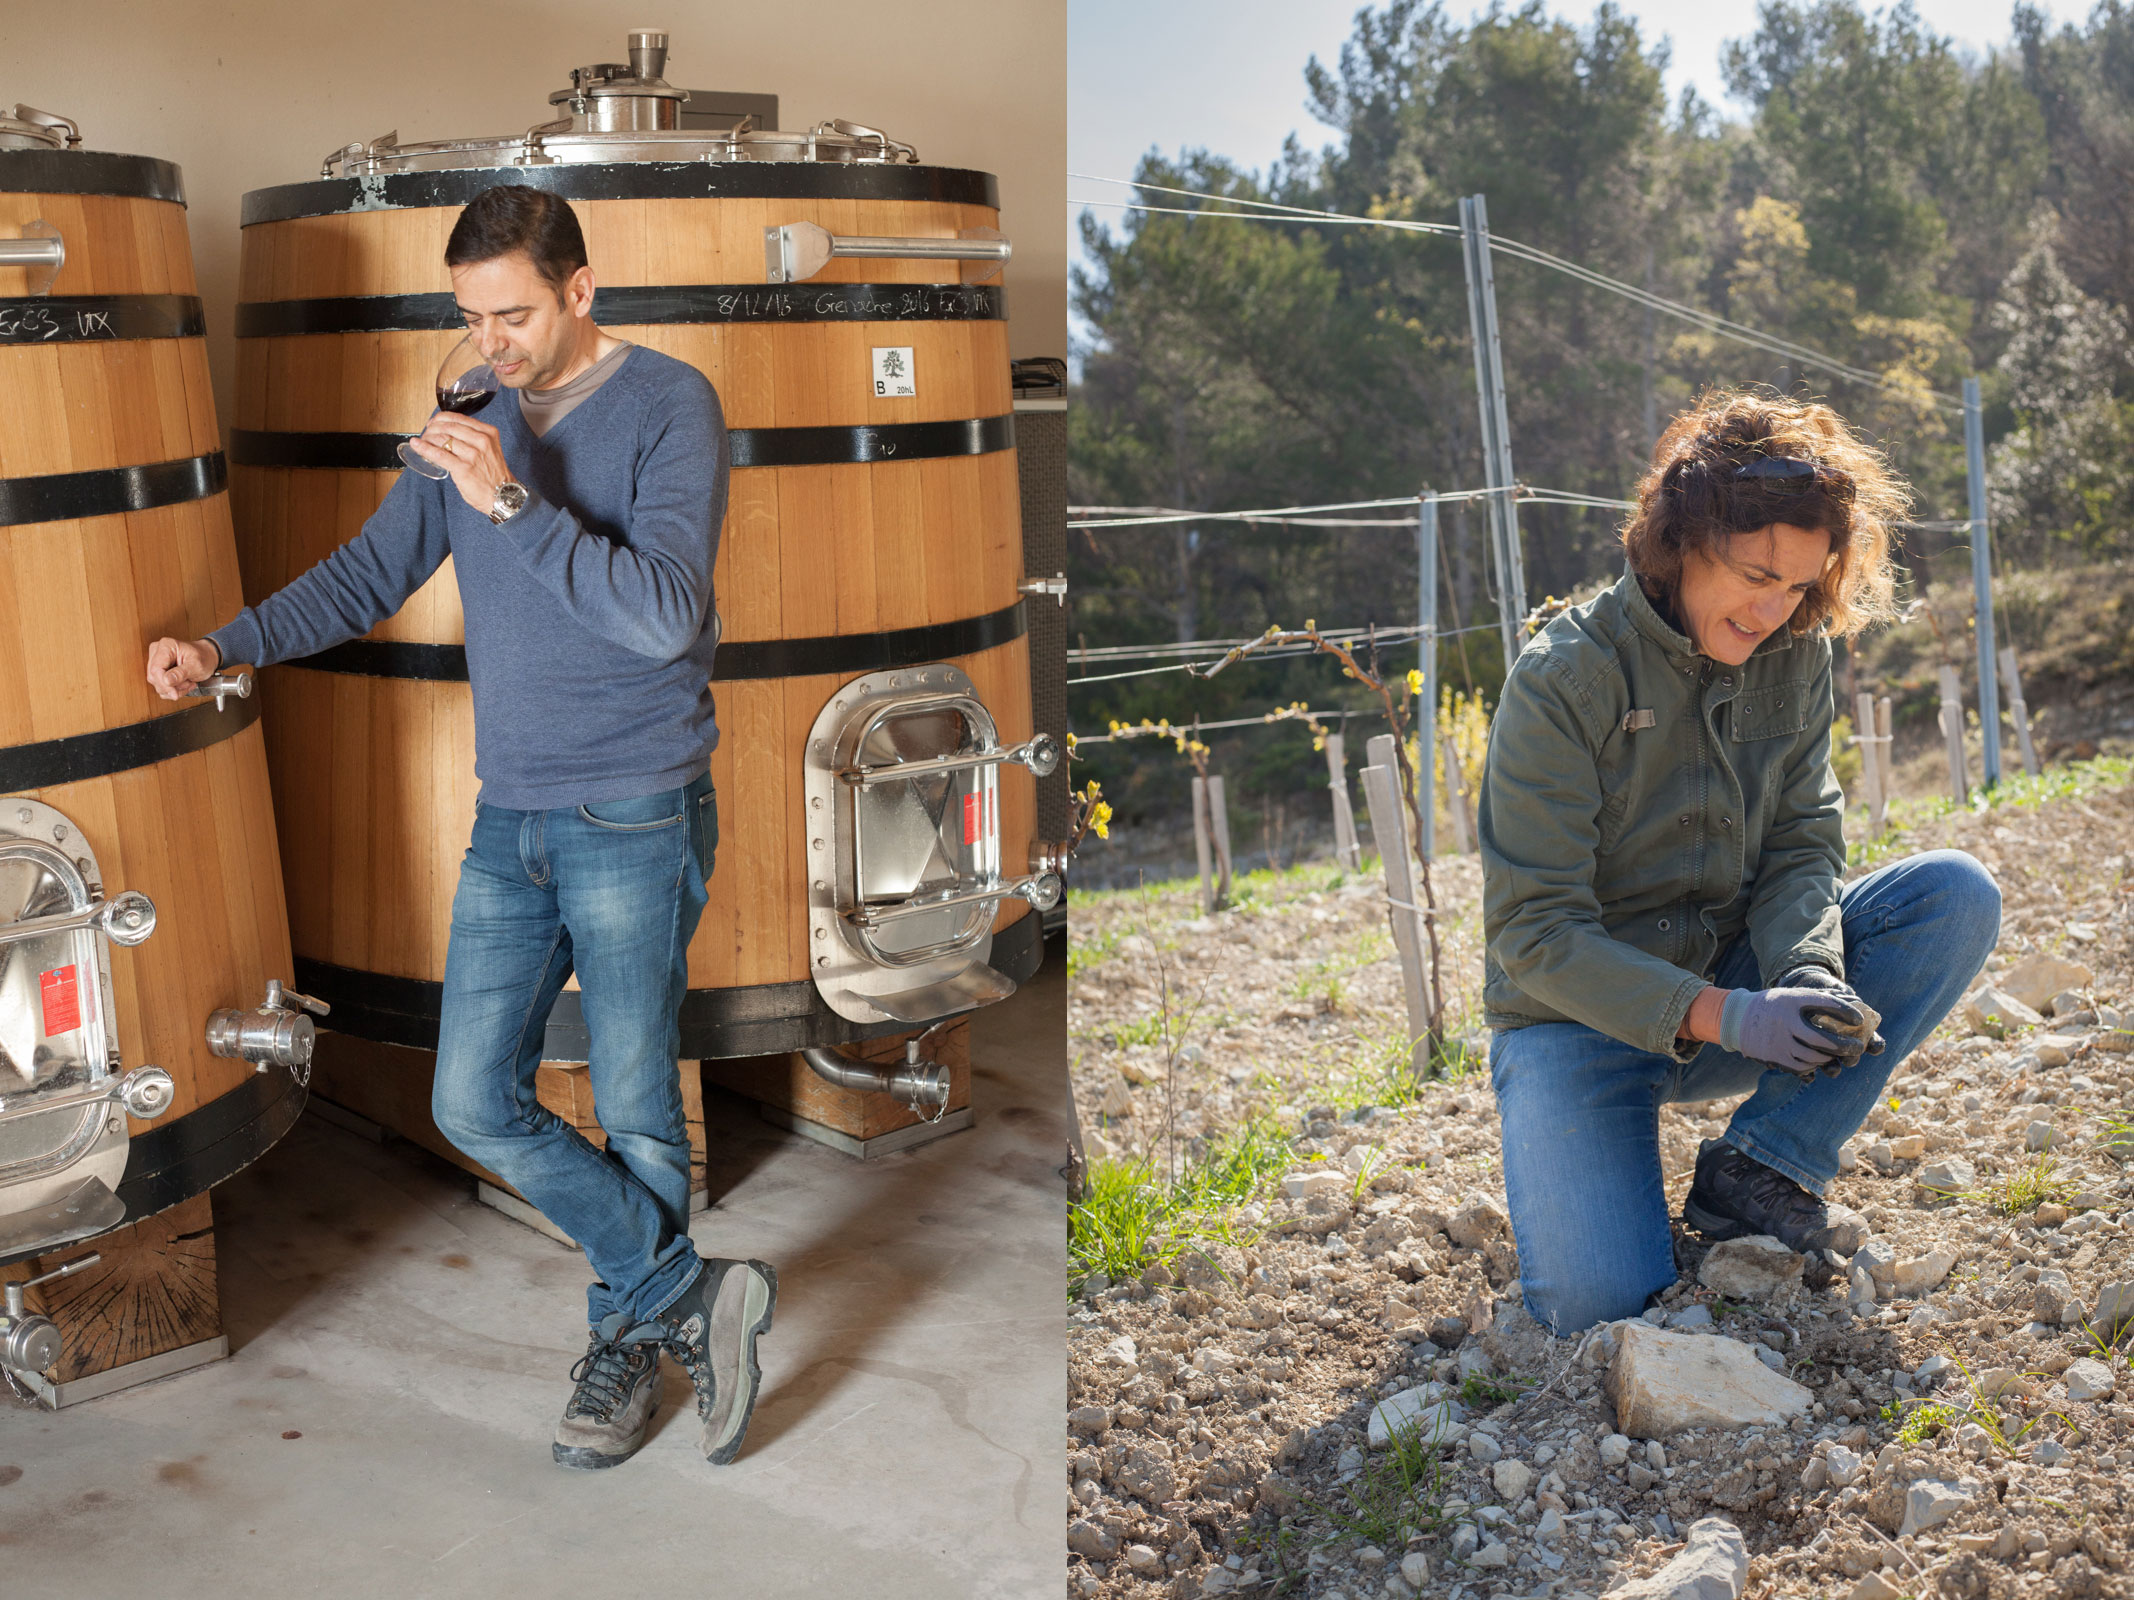 A family affair: Winemaker Jean-Louis Gallucci and his wife, vineyard manager Bénédicte Gallucci. Bénédicte's brother is estate founder Xavier Rolet. ©Kevin Day / Opening a Bottle